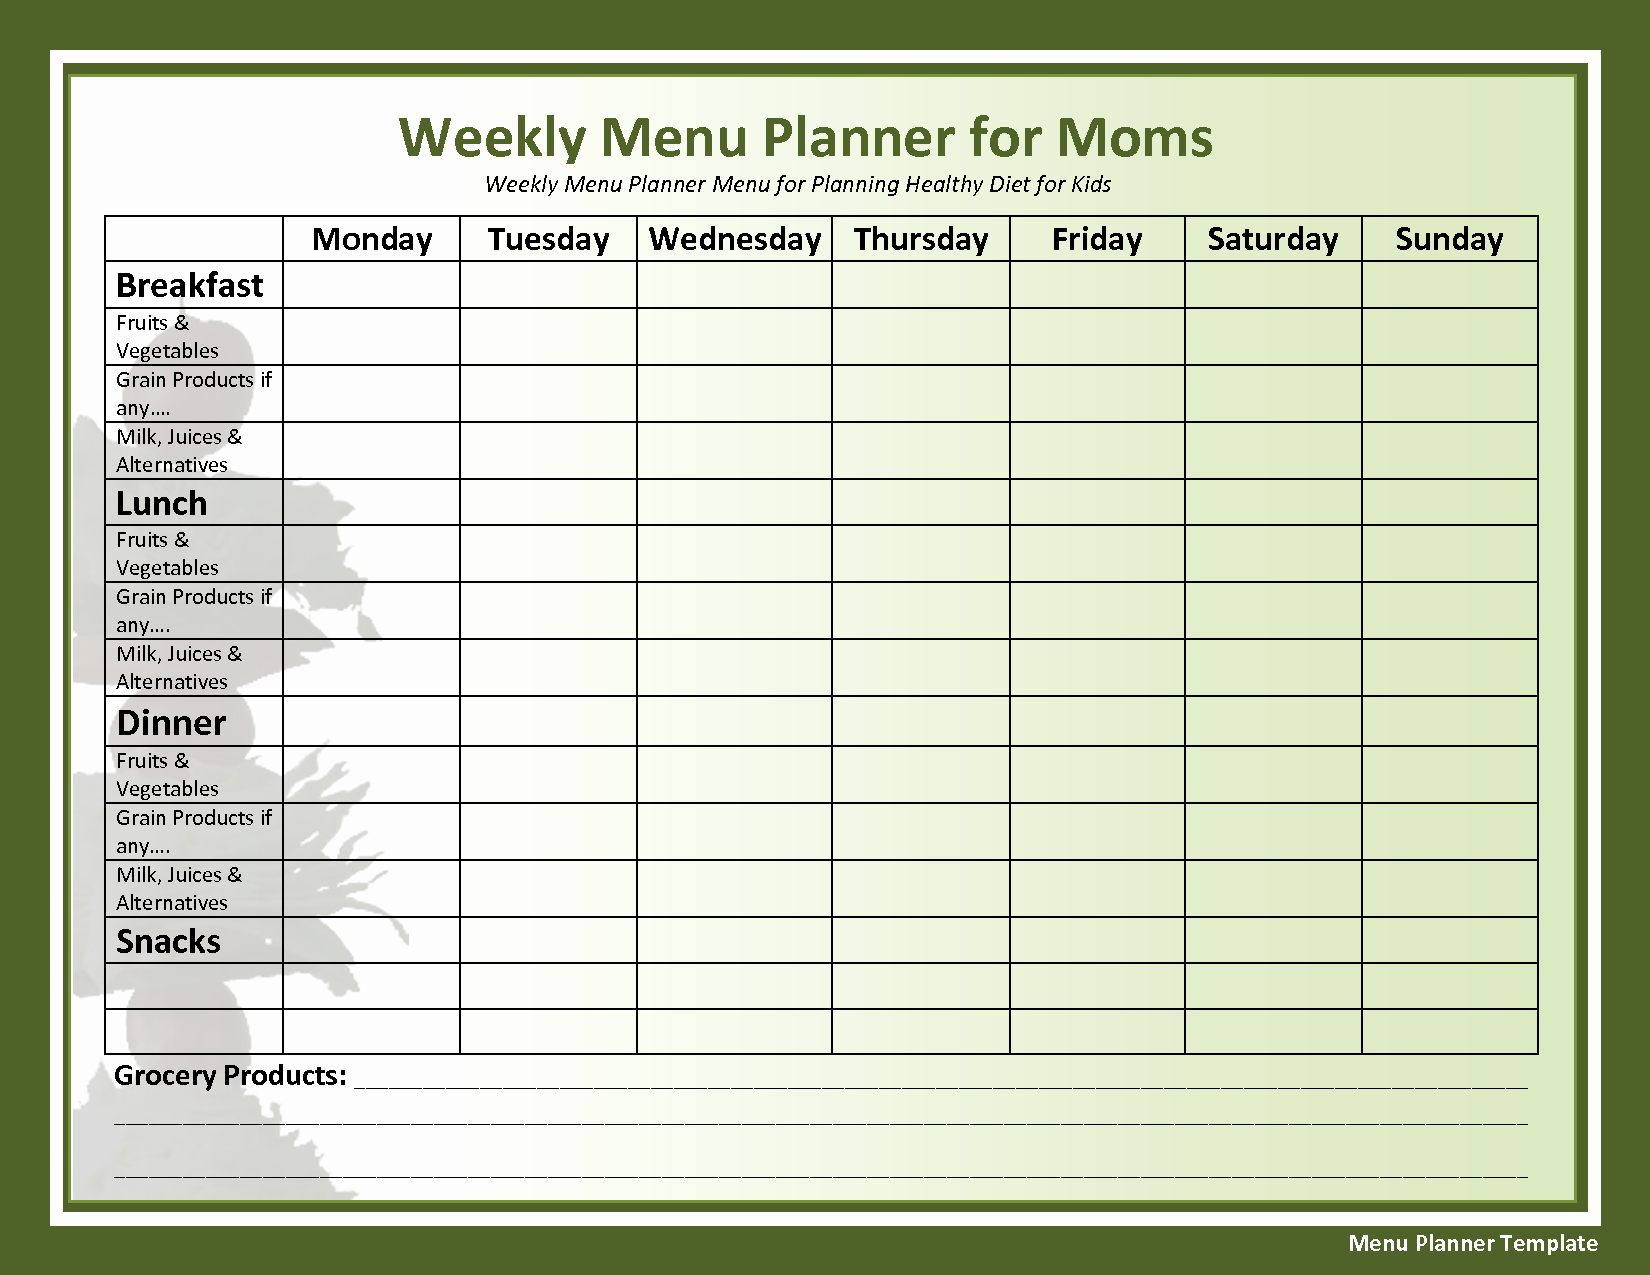 Home Dinner Menu Template New Weekly Menu Template